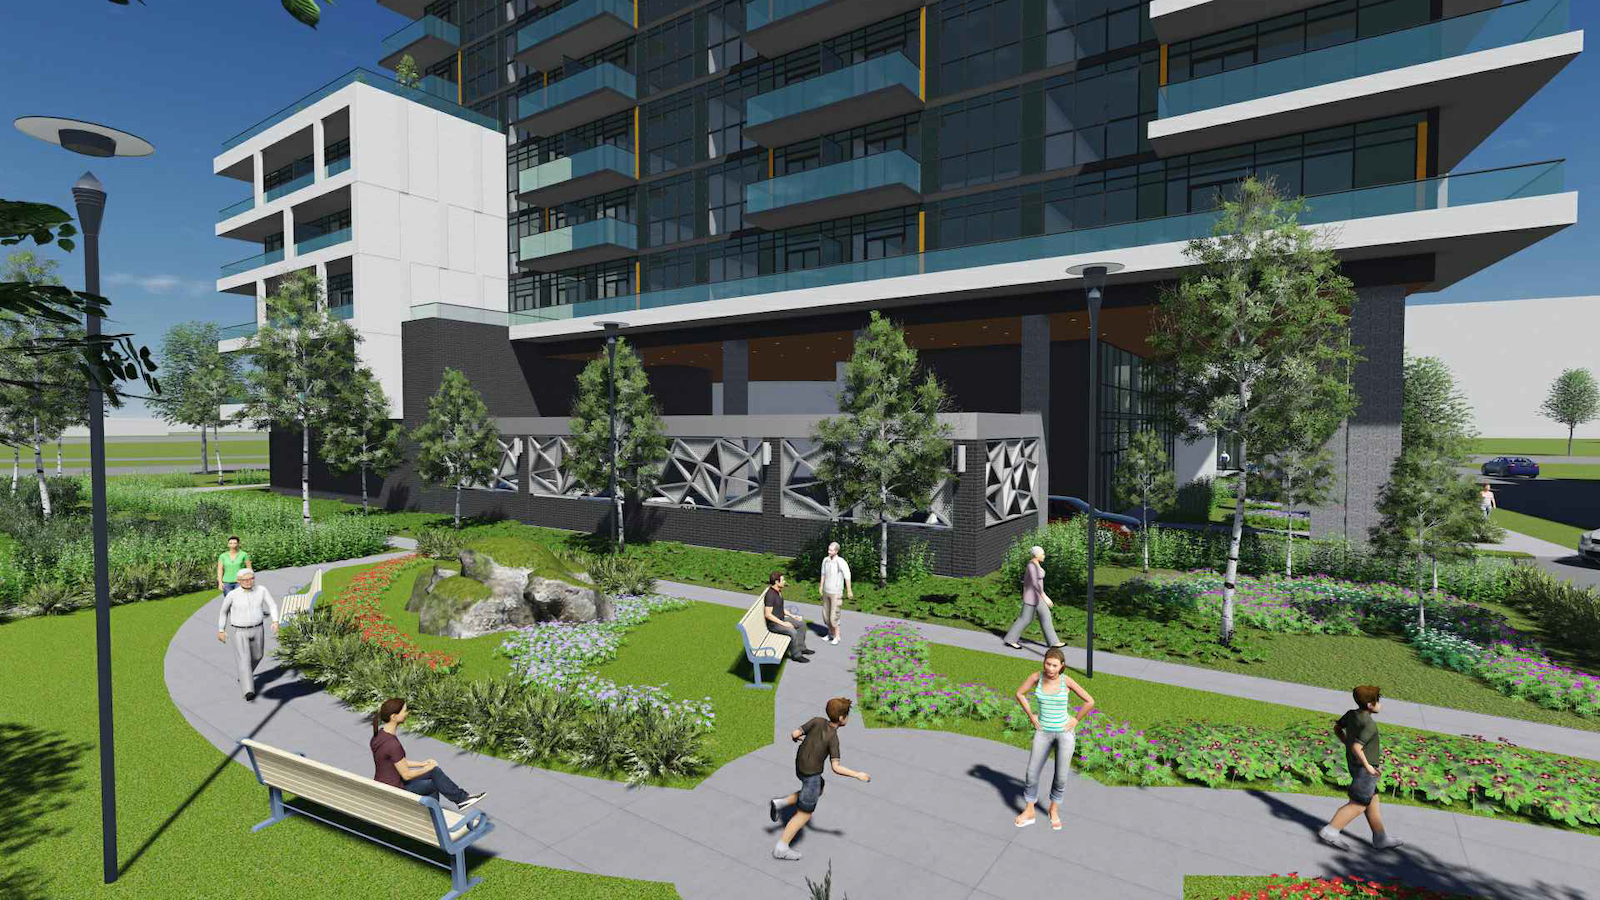 Rendering of 2699 Keele Street Condos garden and courtyard.